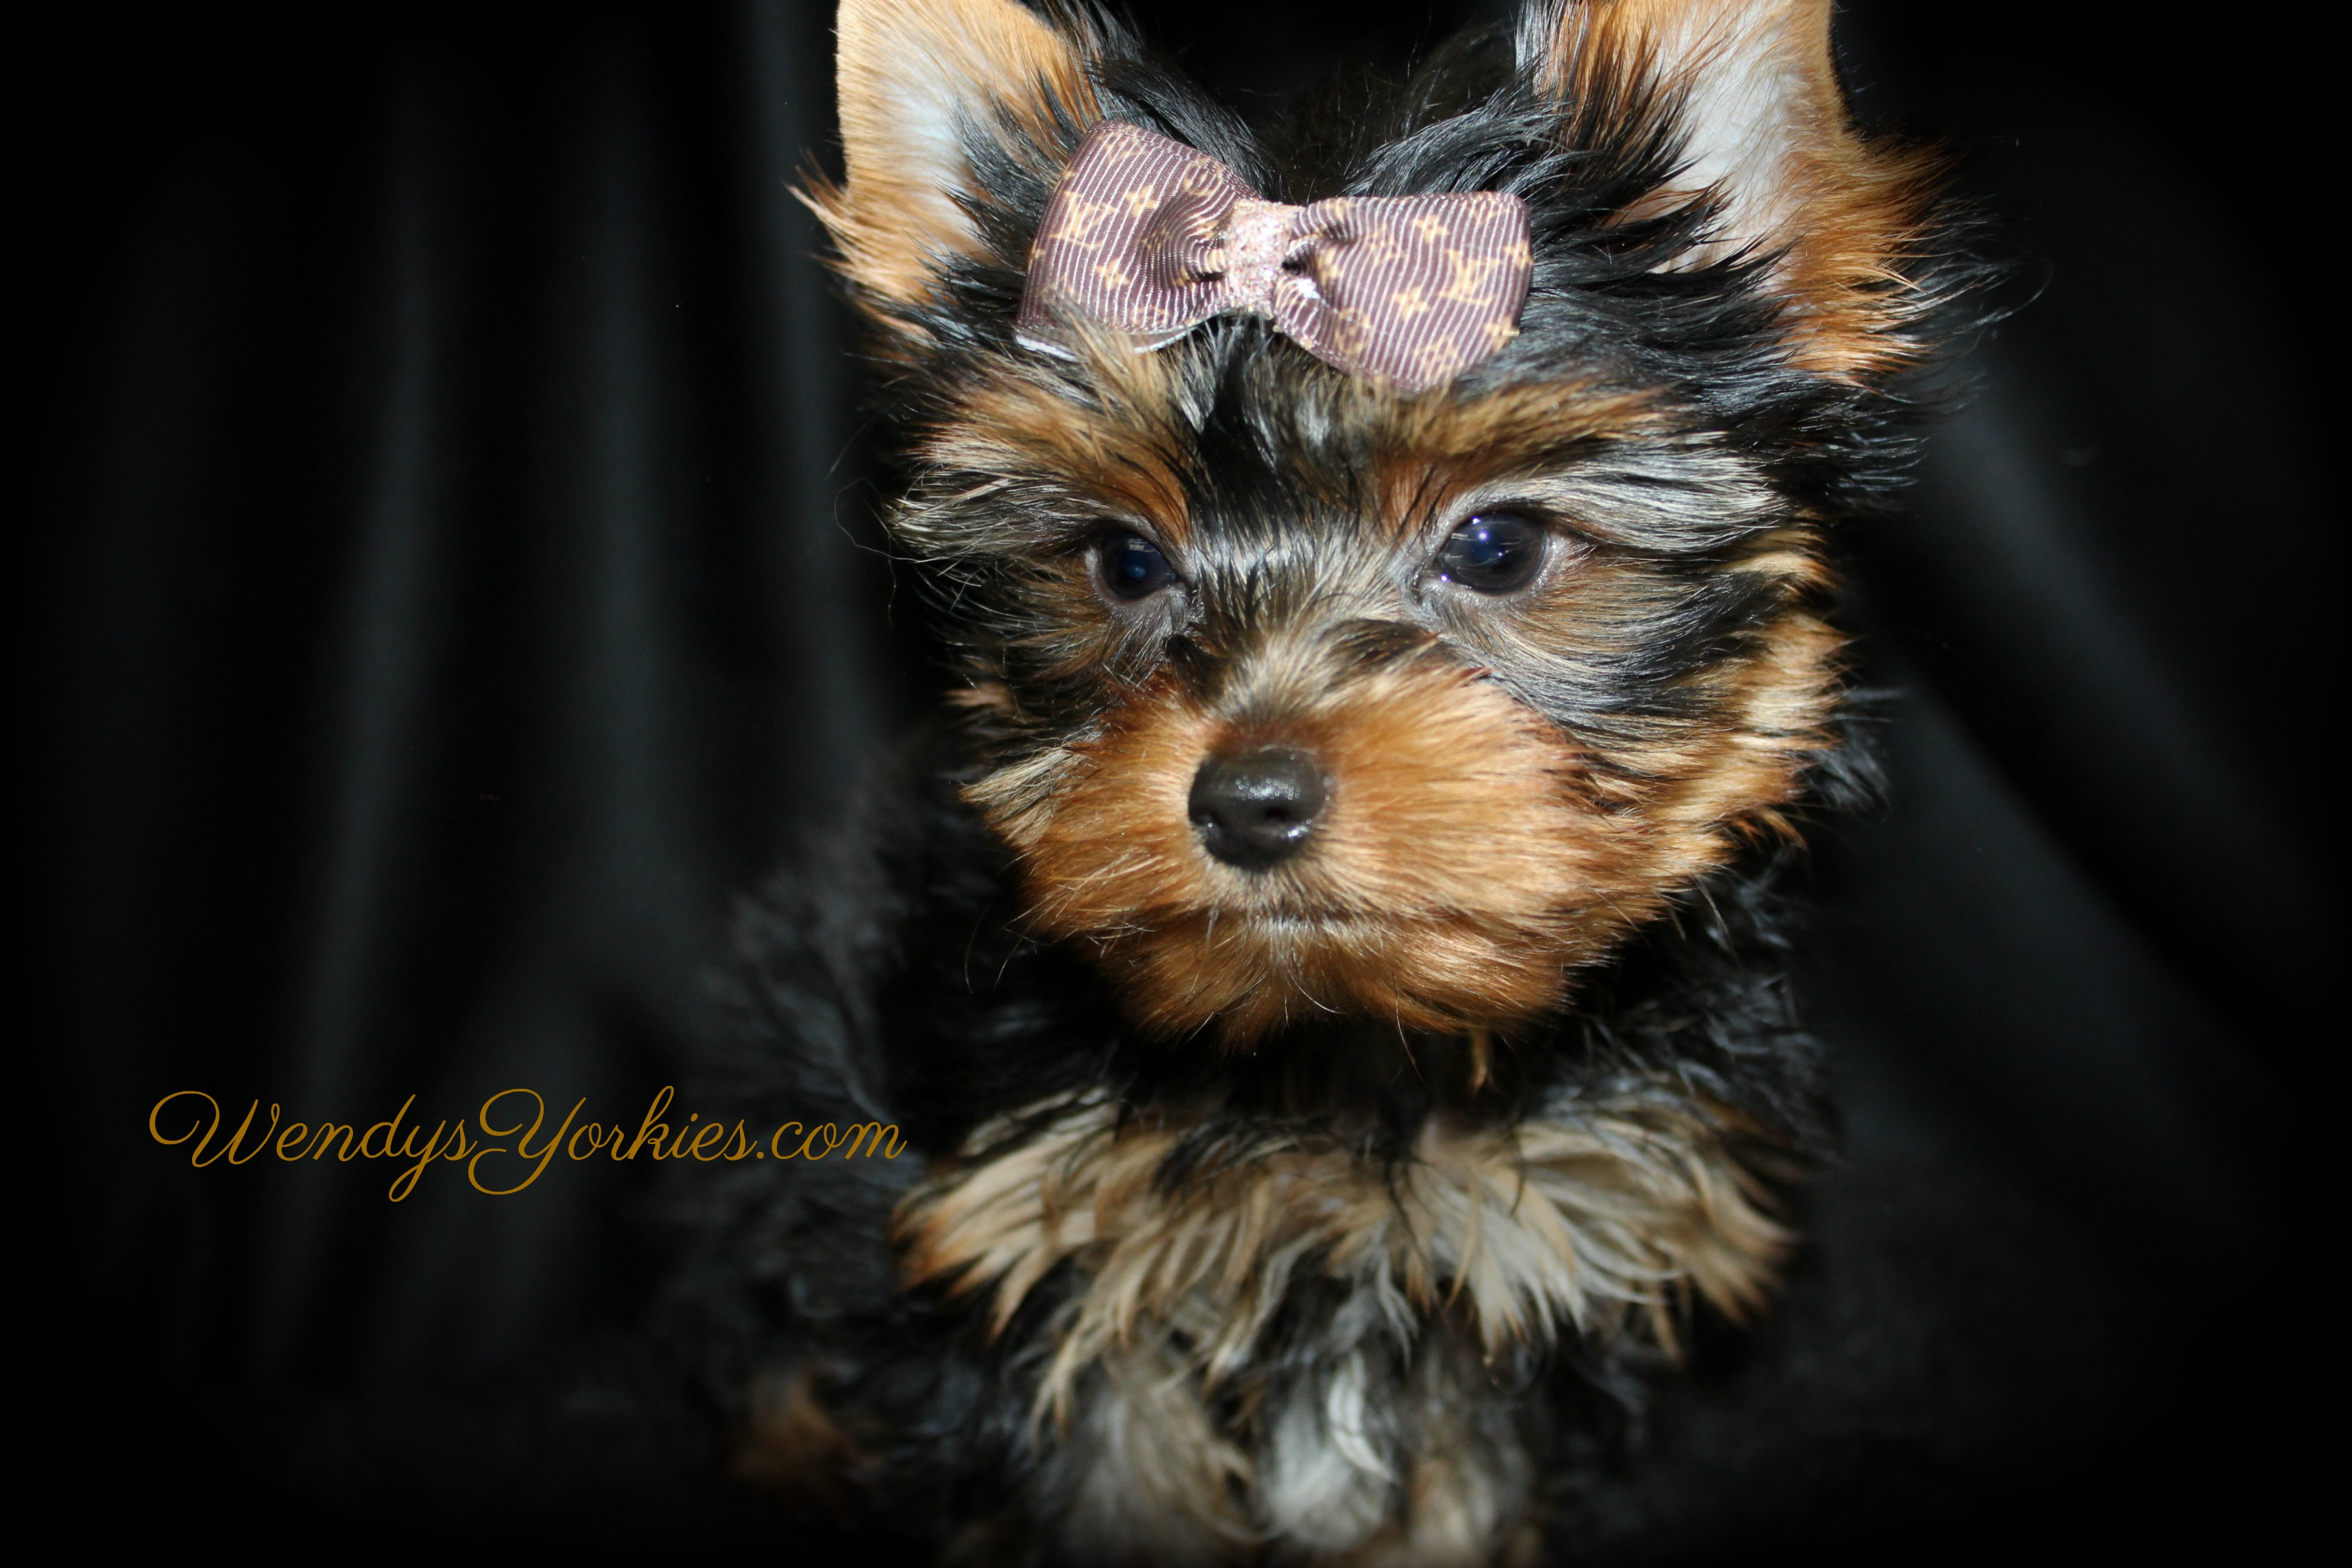 Tiny Teacup Male Yorkie puppy for sale, Haley m1, Ringo, WendysYorkies.com